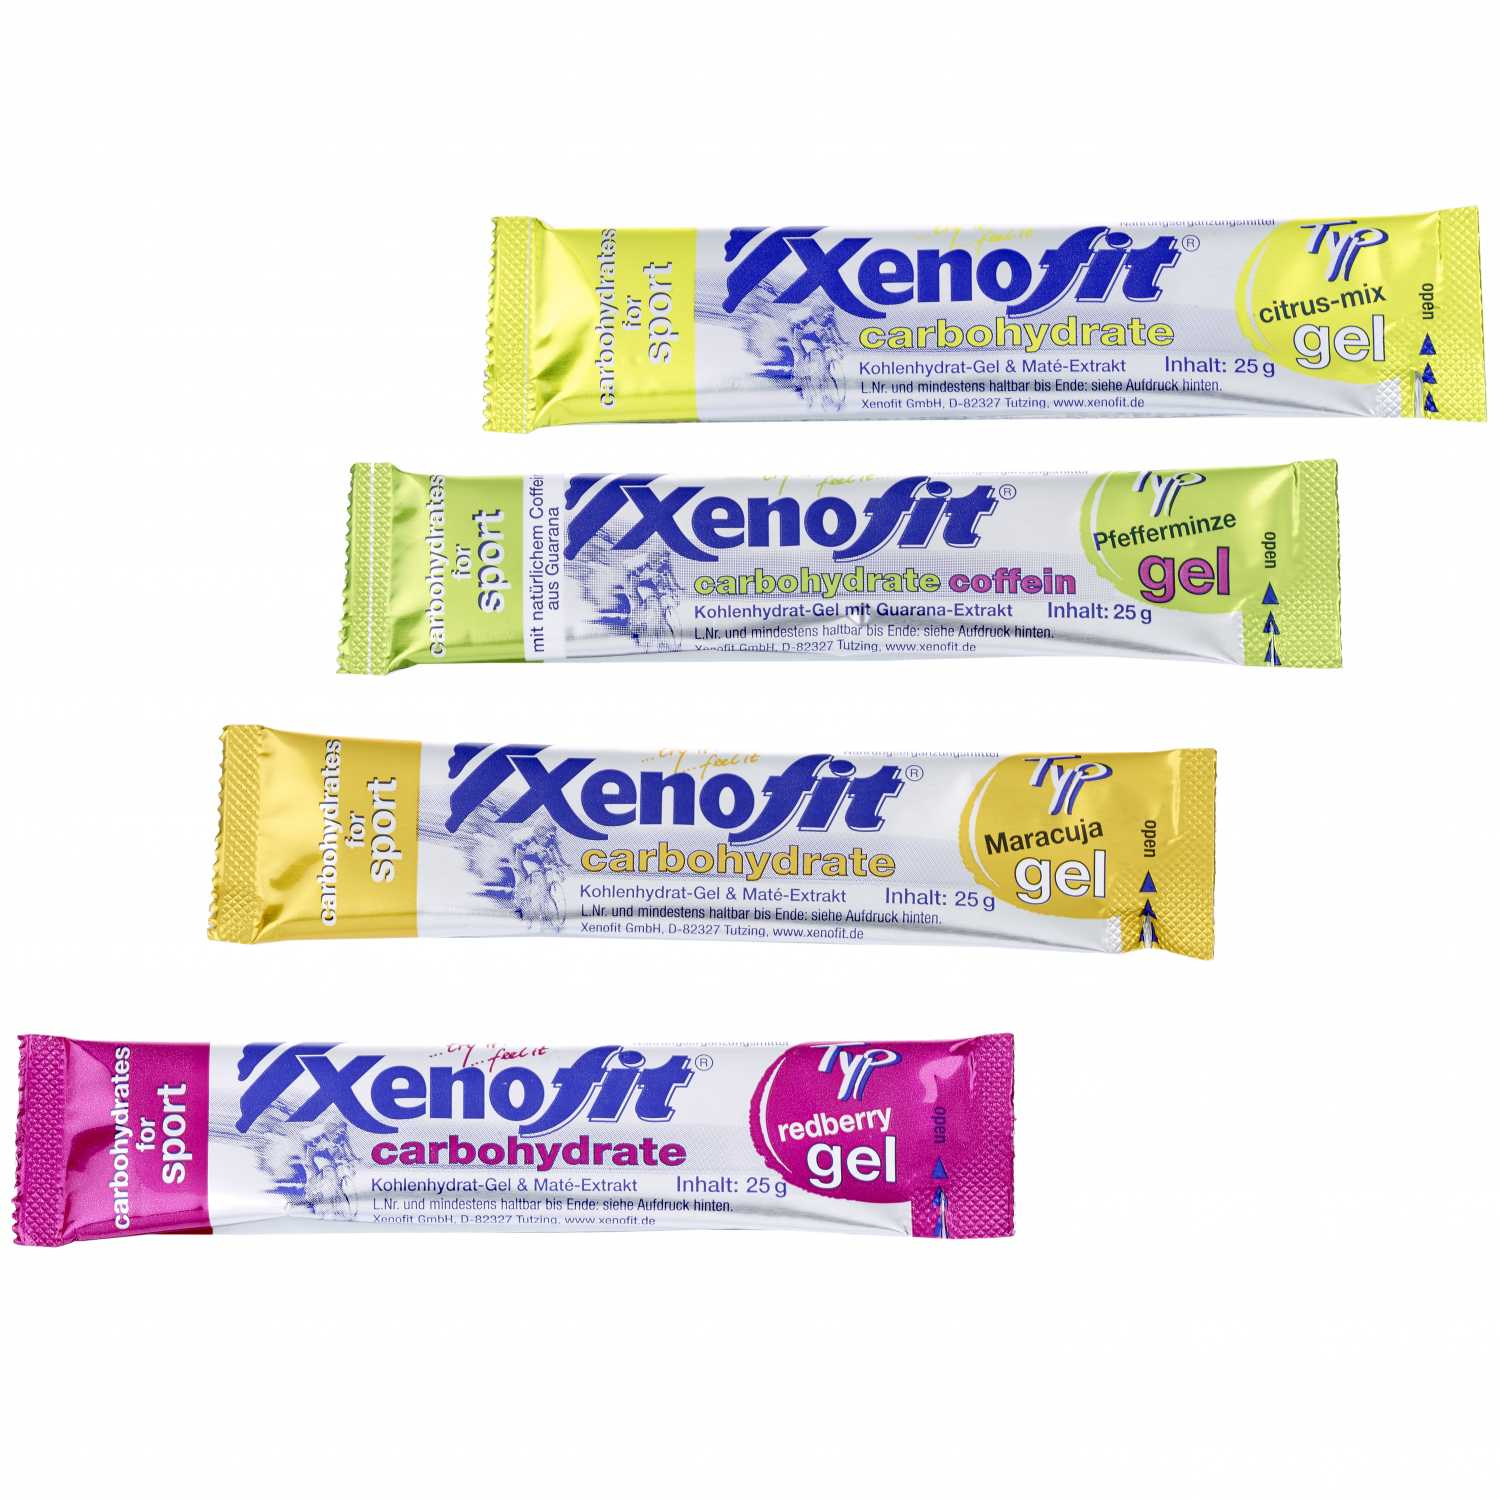 Xenofit_carbohydrate_gel_25g_30x30